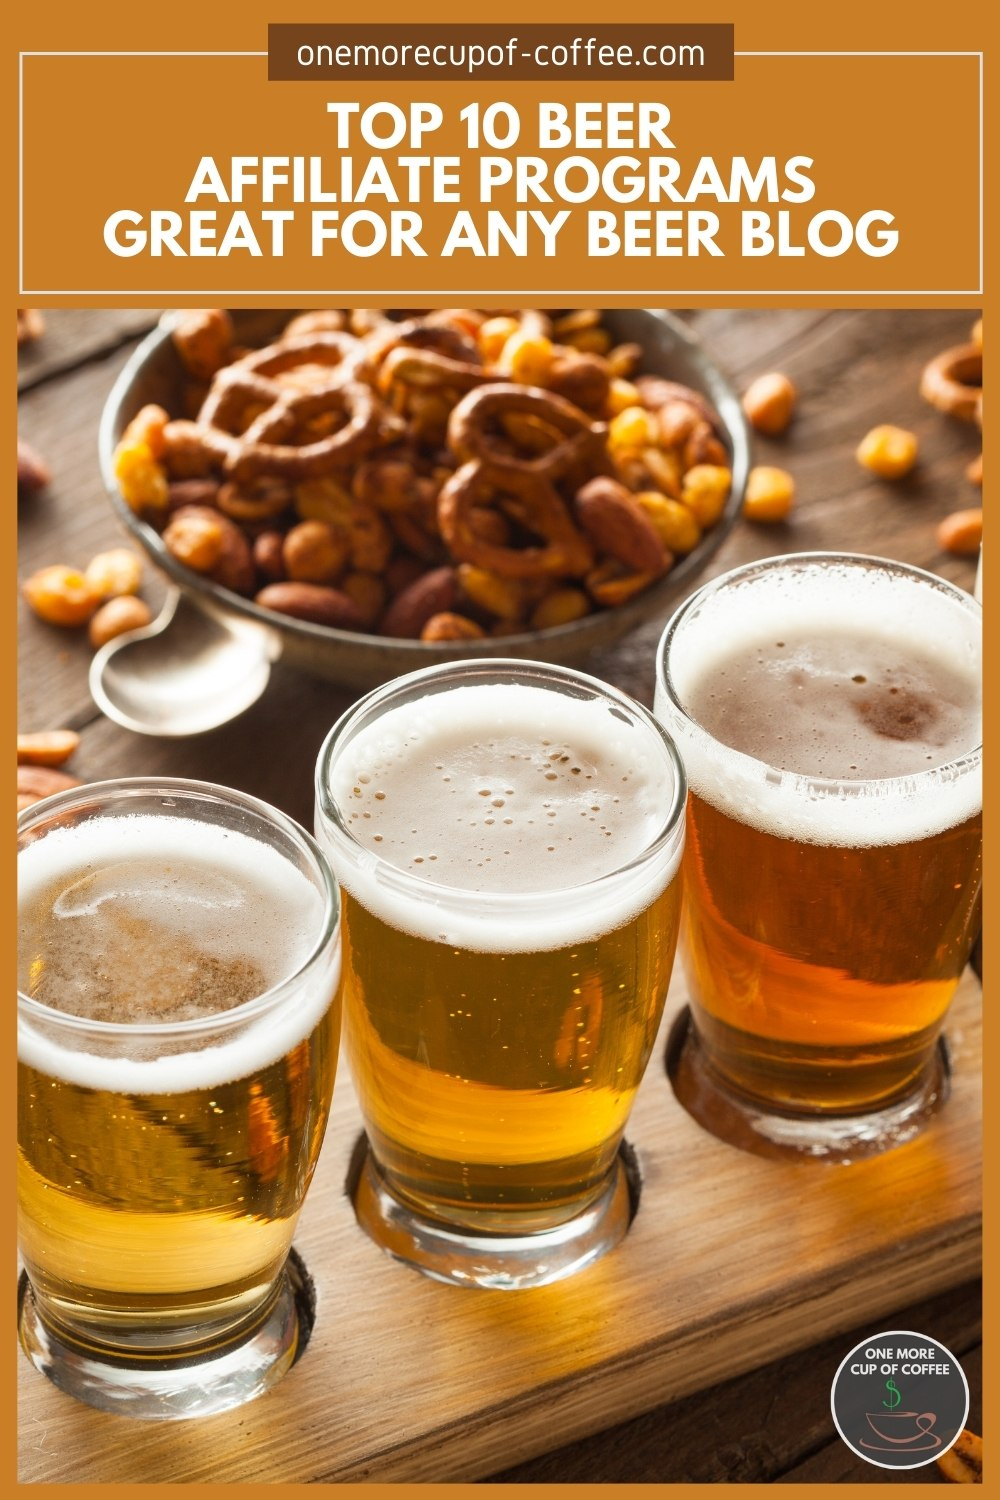 """closeup image of 3 glasses of different beer with pretzel and nuts in a bowl at the back, with text overlay """"Top 10 Beer Affiliate Programs Great For Any Beer Blog"""""""